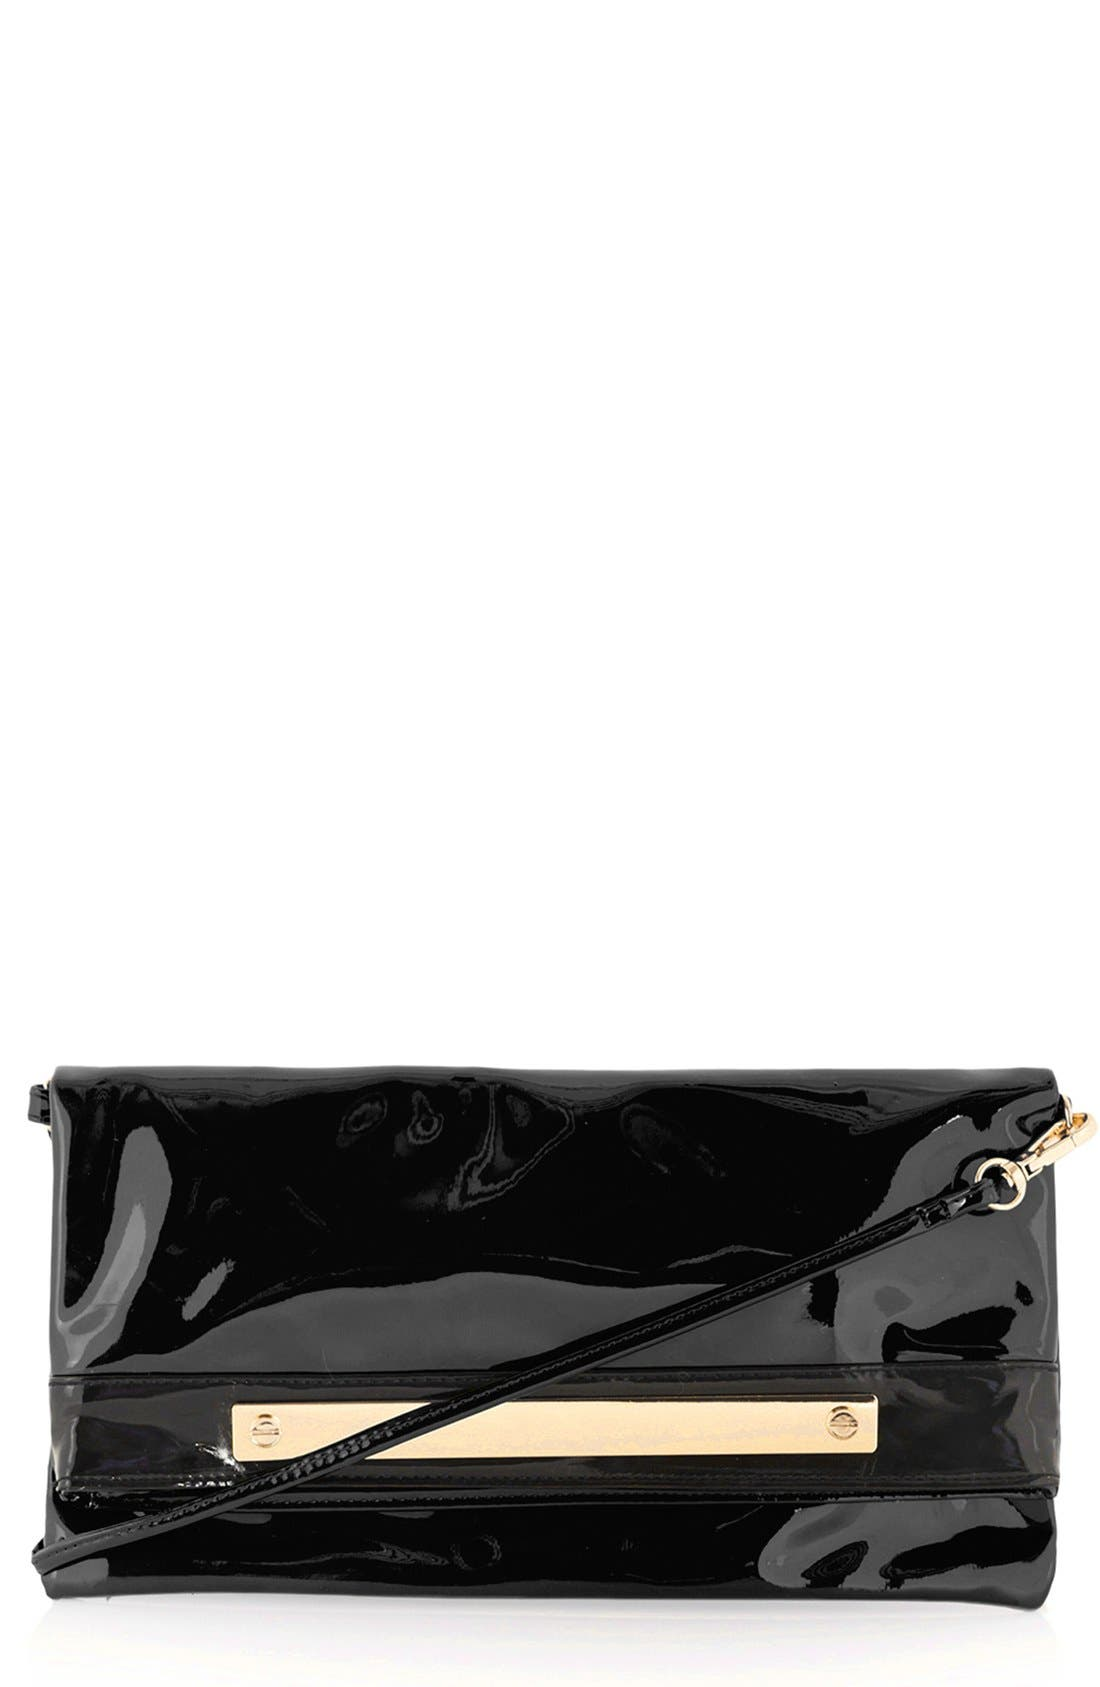 Main Image - Topshop Faux Patent Leather Clutch